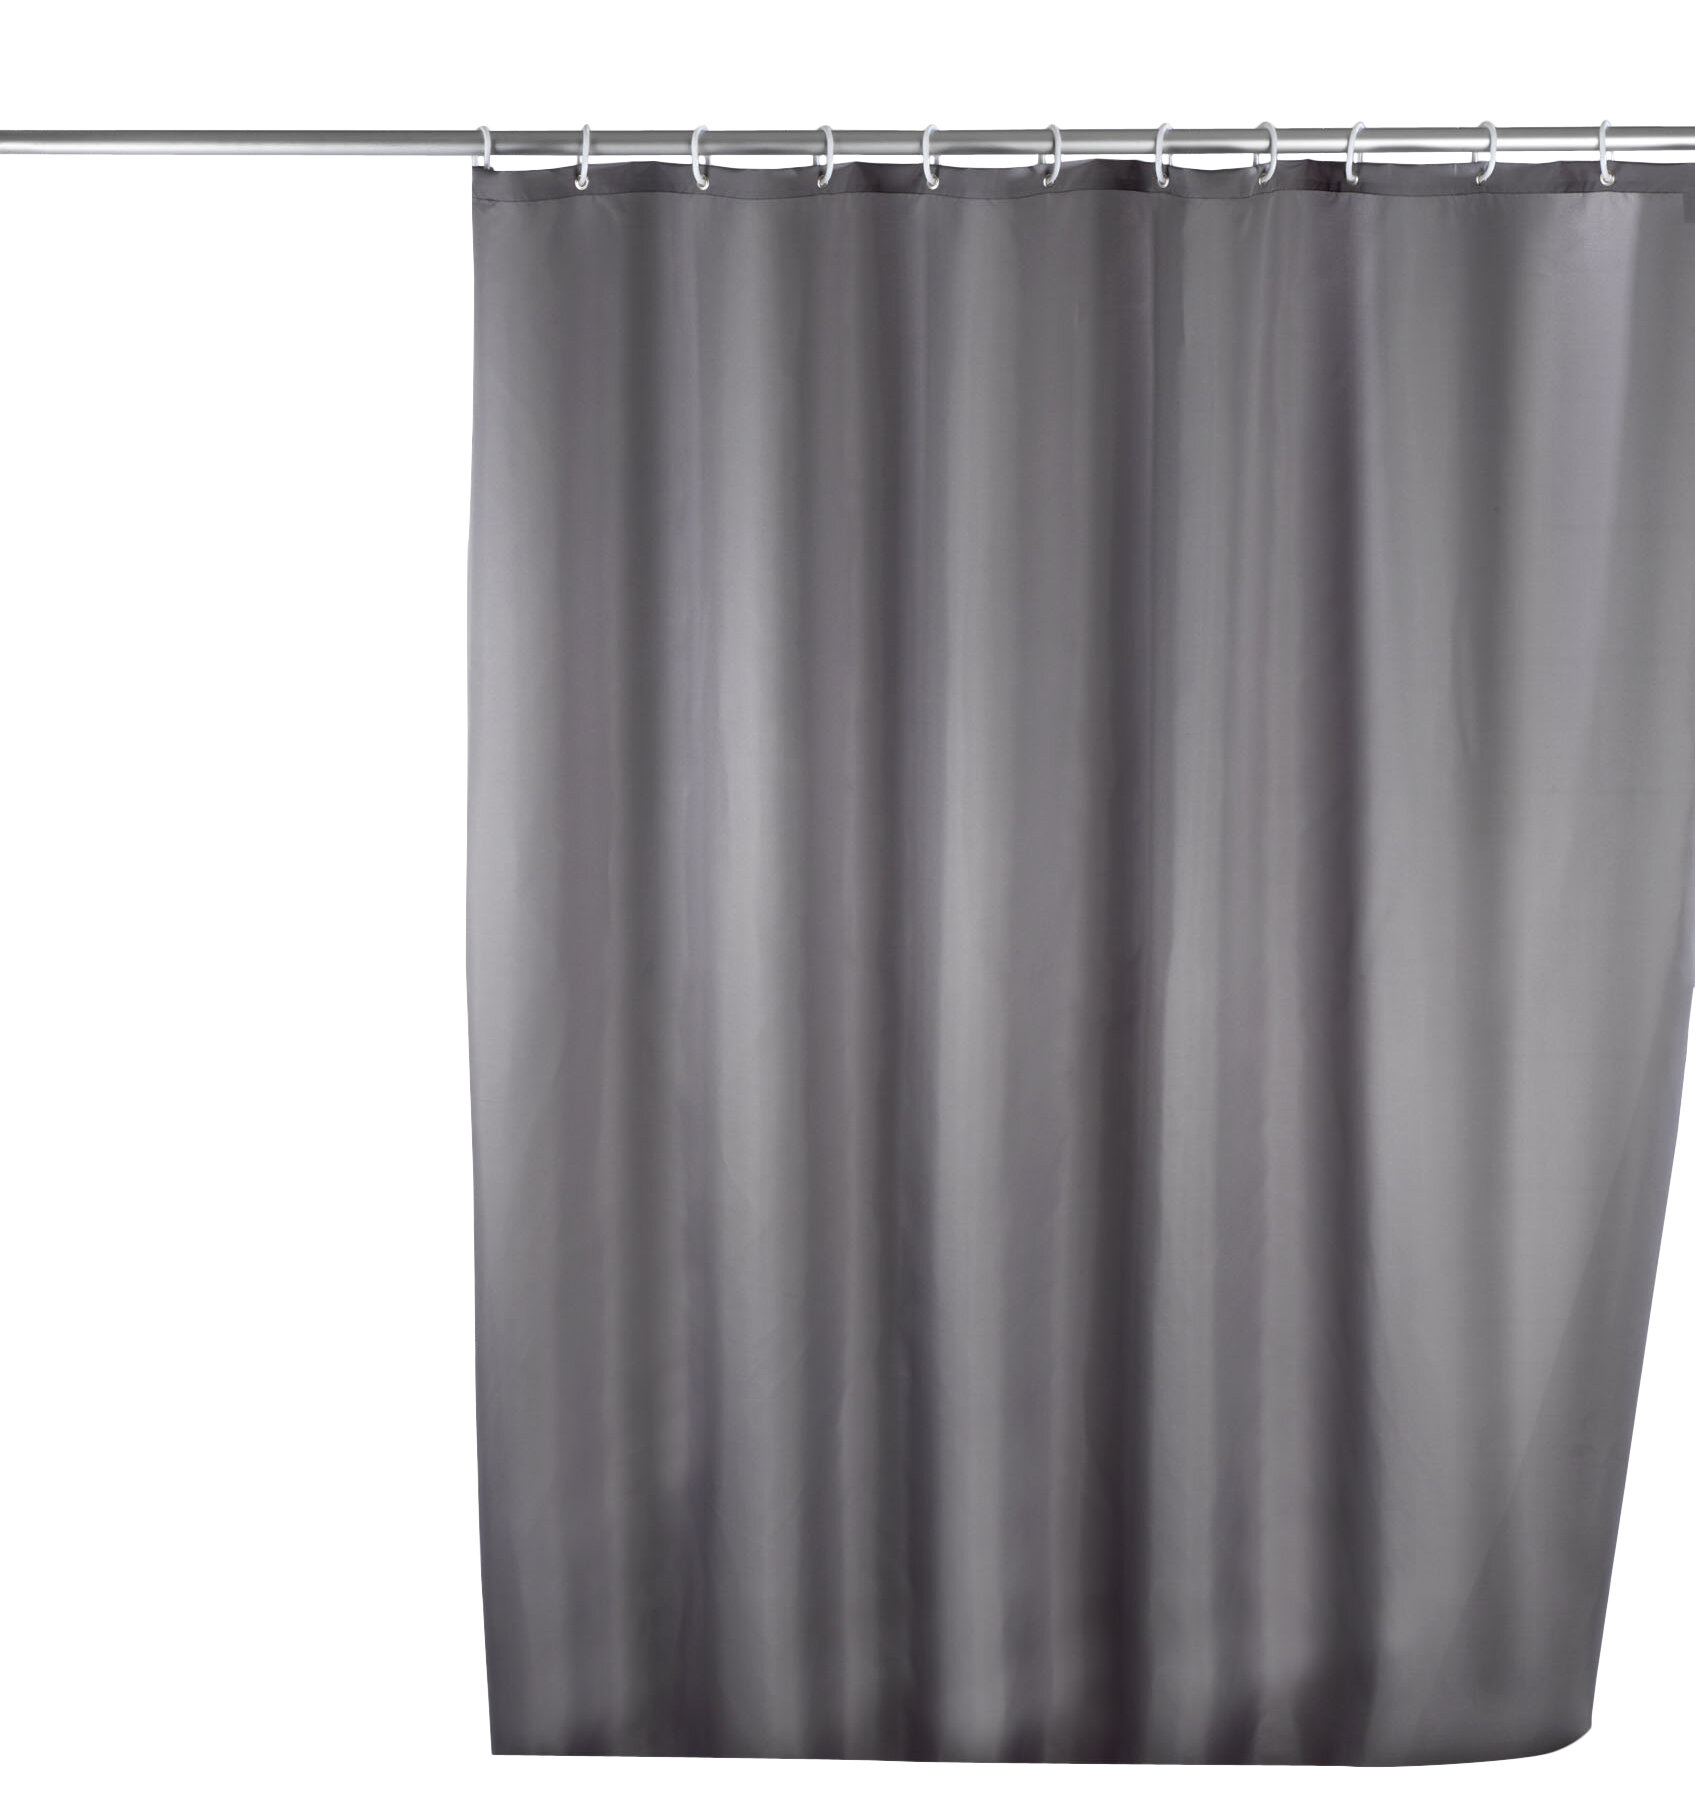 Wenko Anti Mould Shower Curtain Reviews